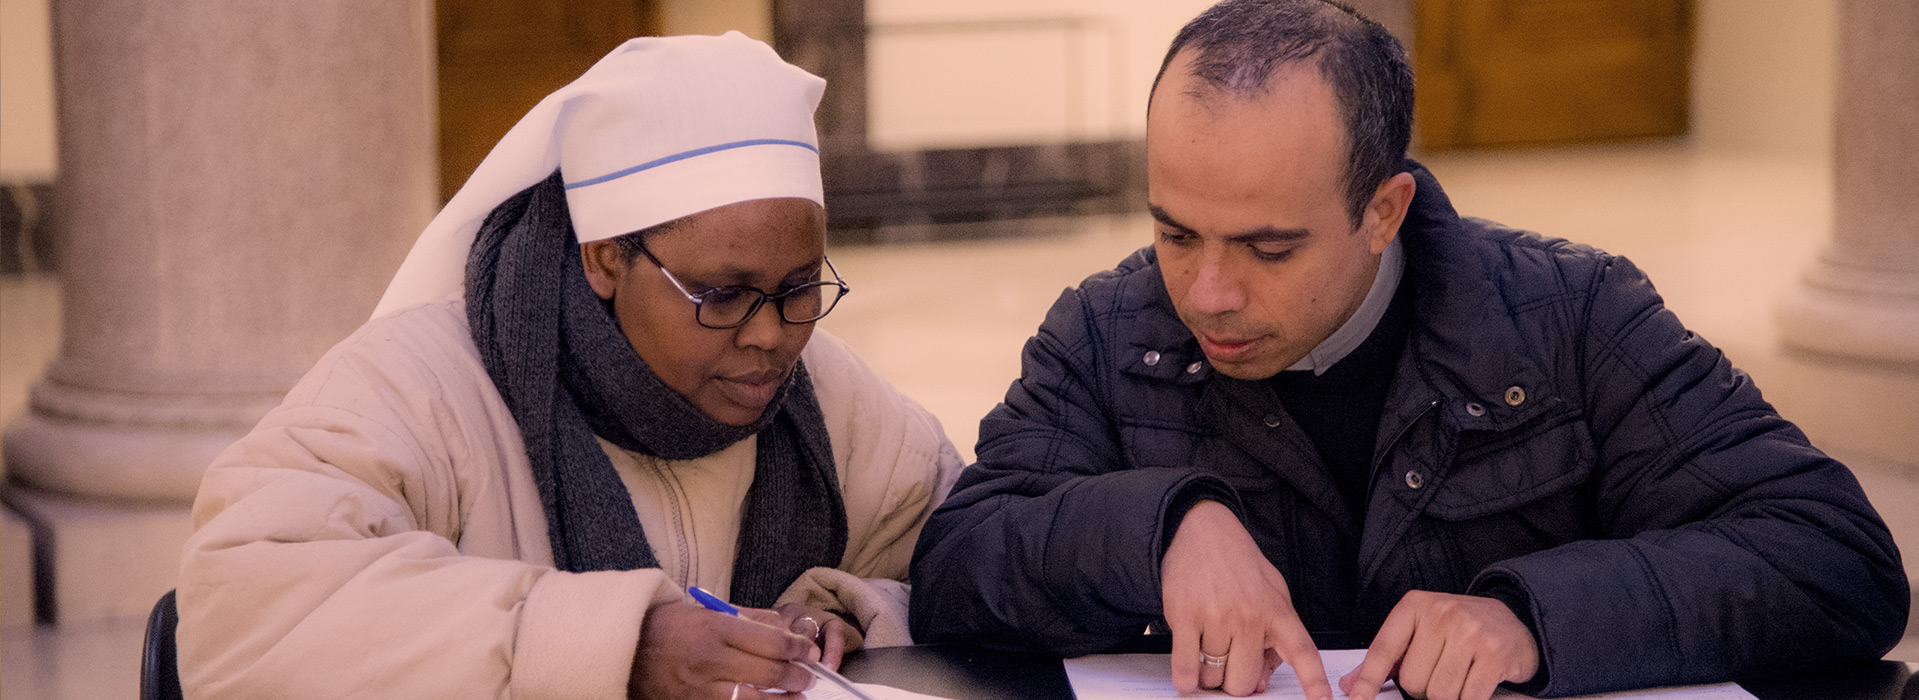 A Nun studying with a seminarian